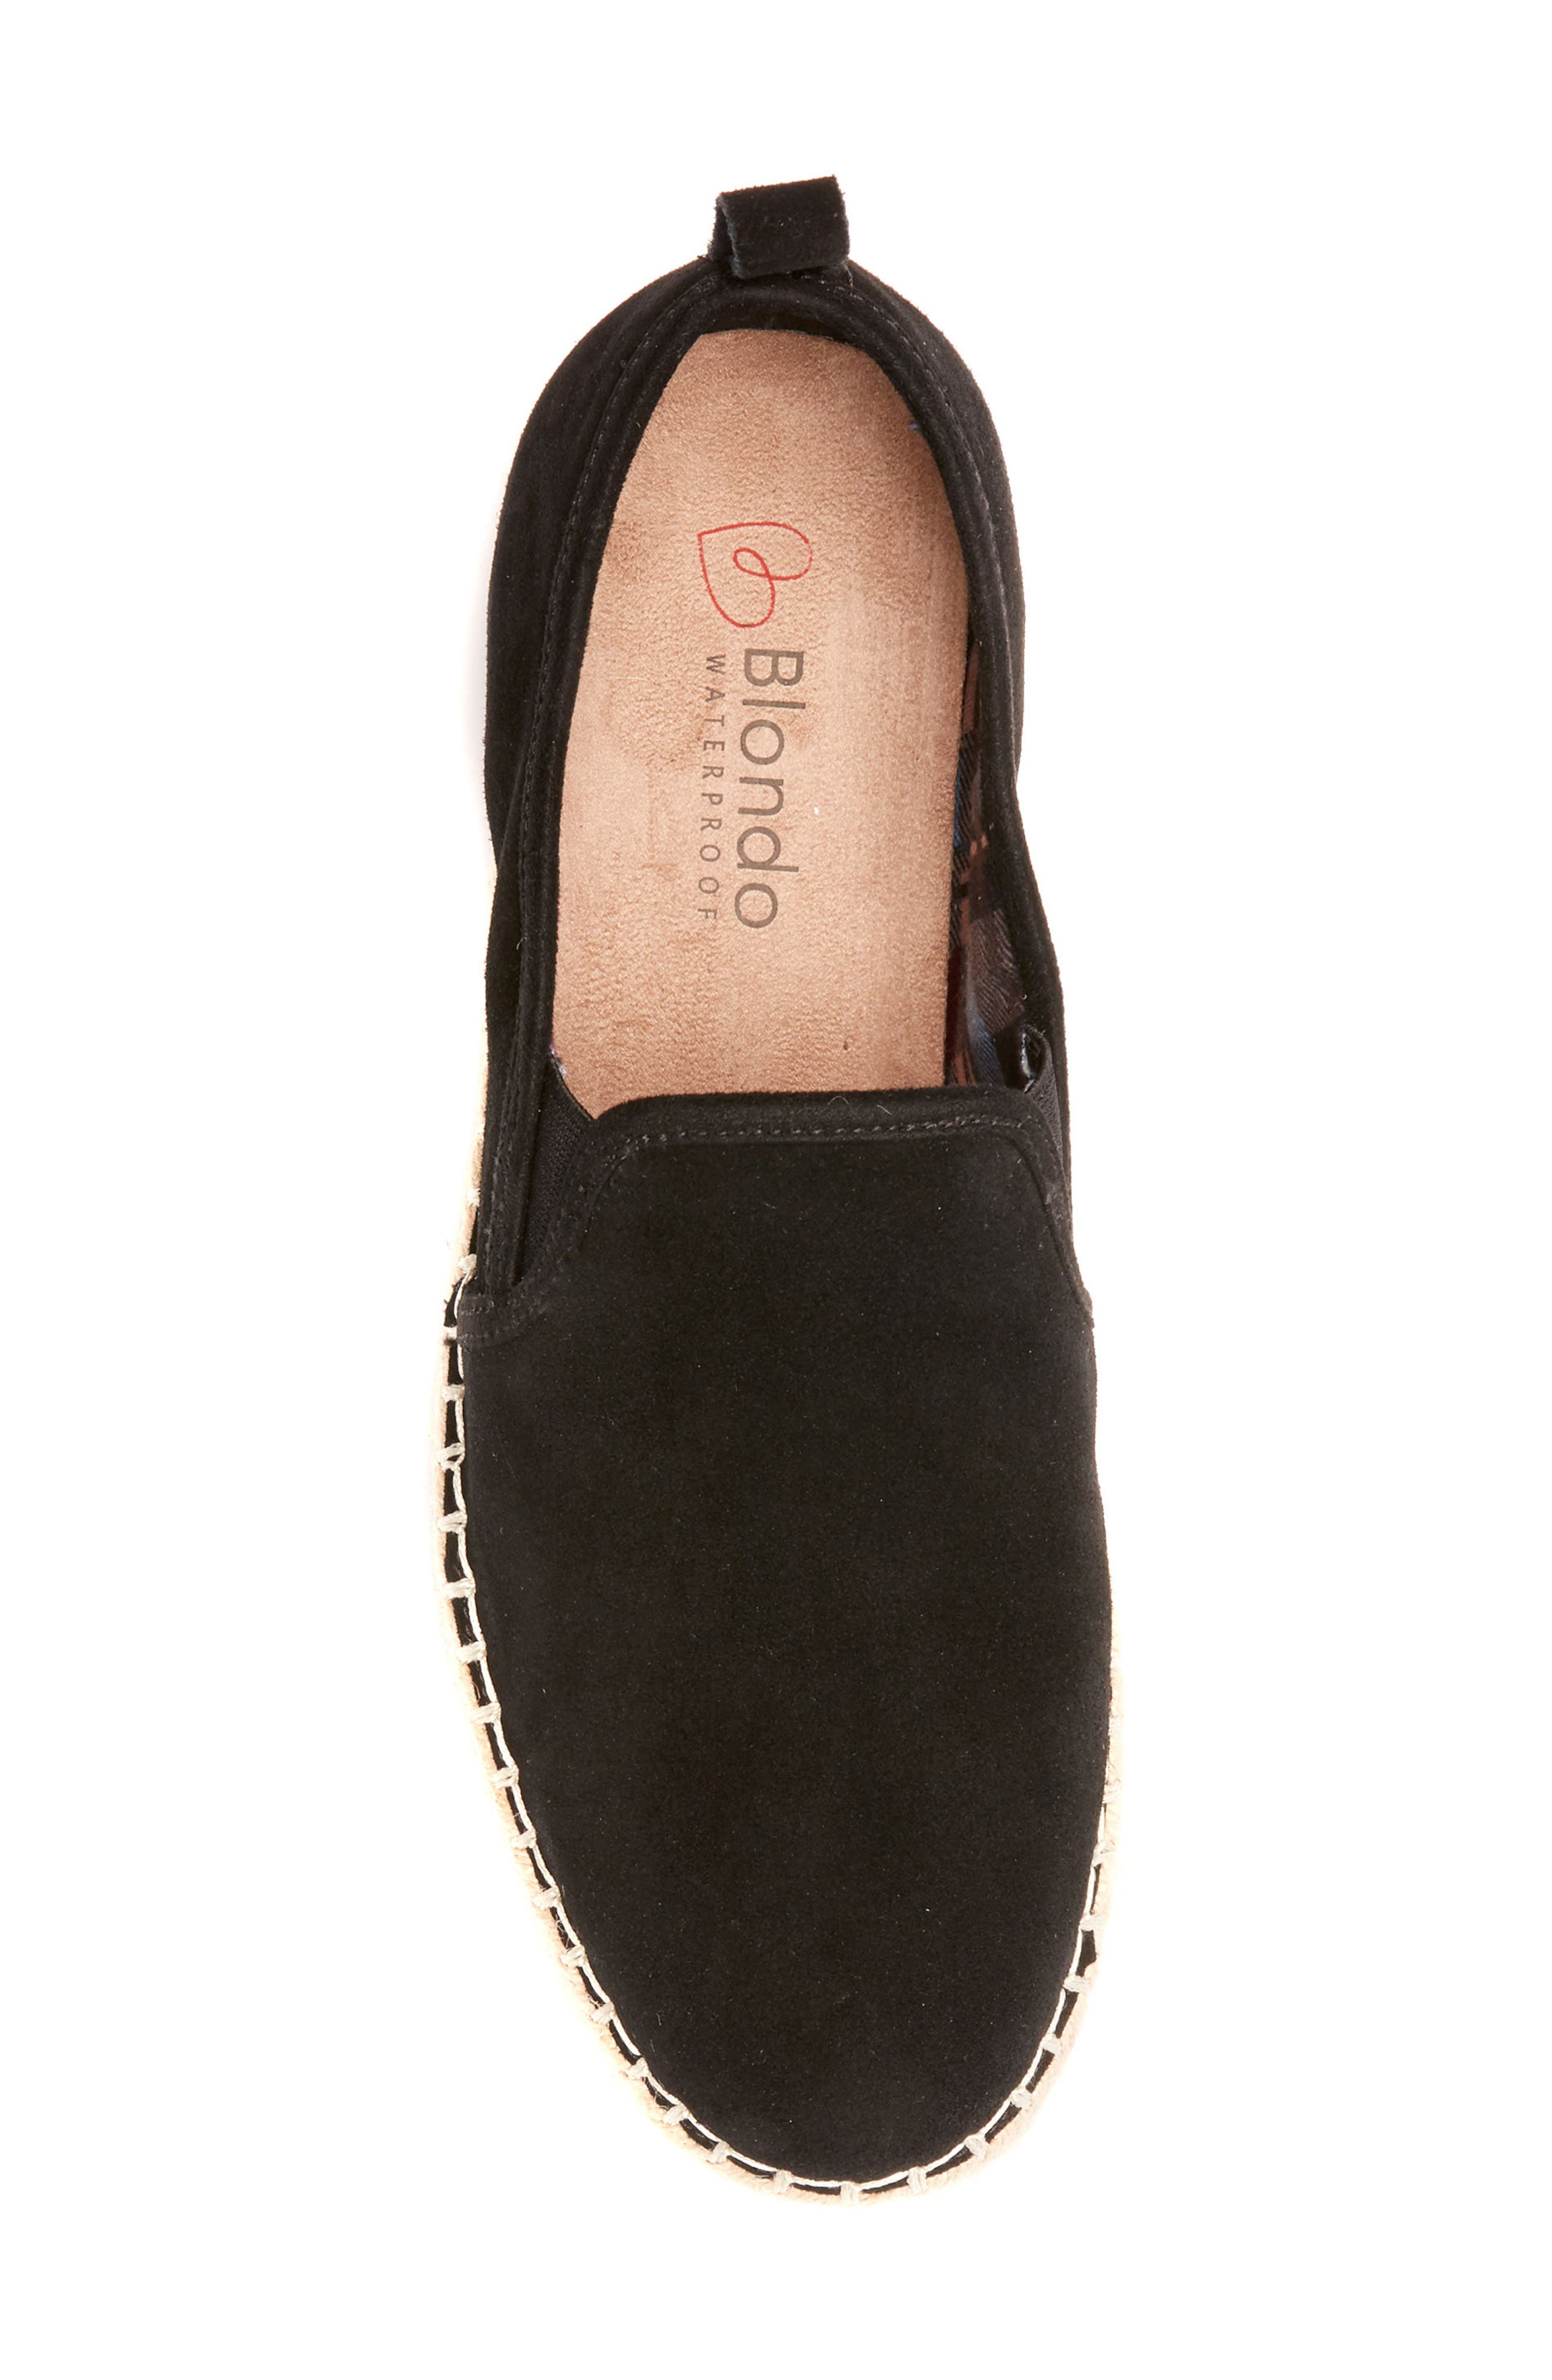 Basha Waterproof Espadrille Flat,                             Alternate thumbnail 5, color,                             015